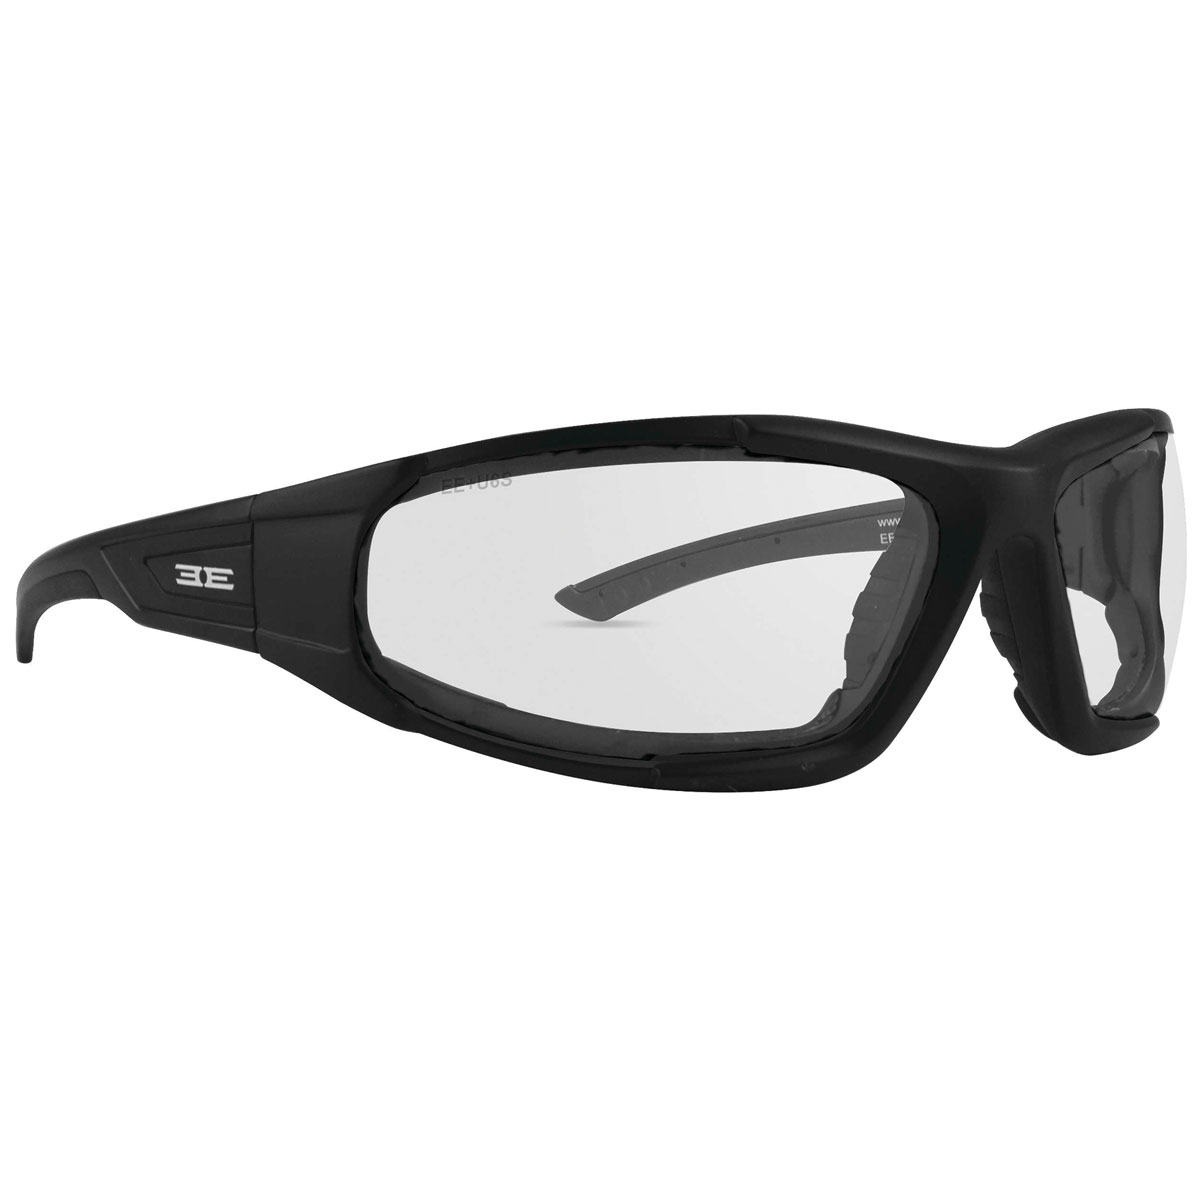 Epoch Eyewear Foam 2 Sunglasses with Clear Lens